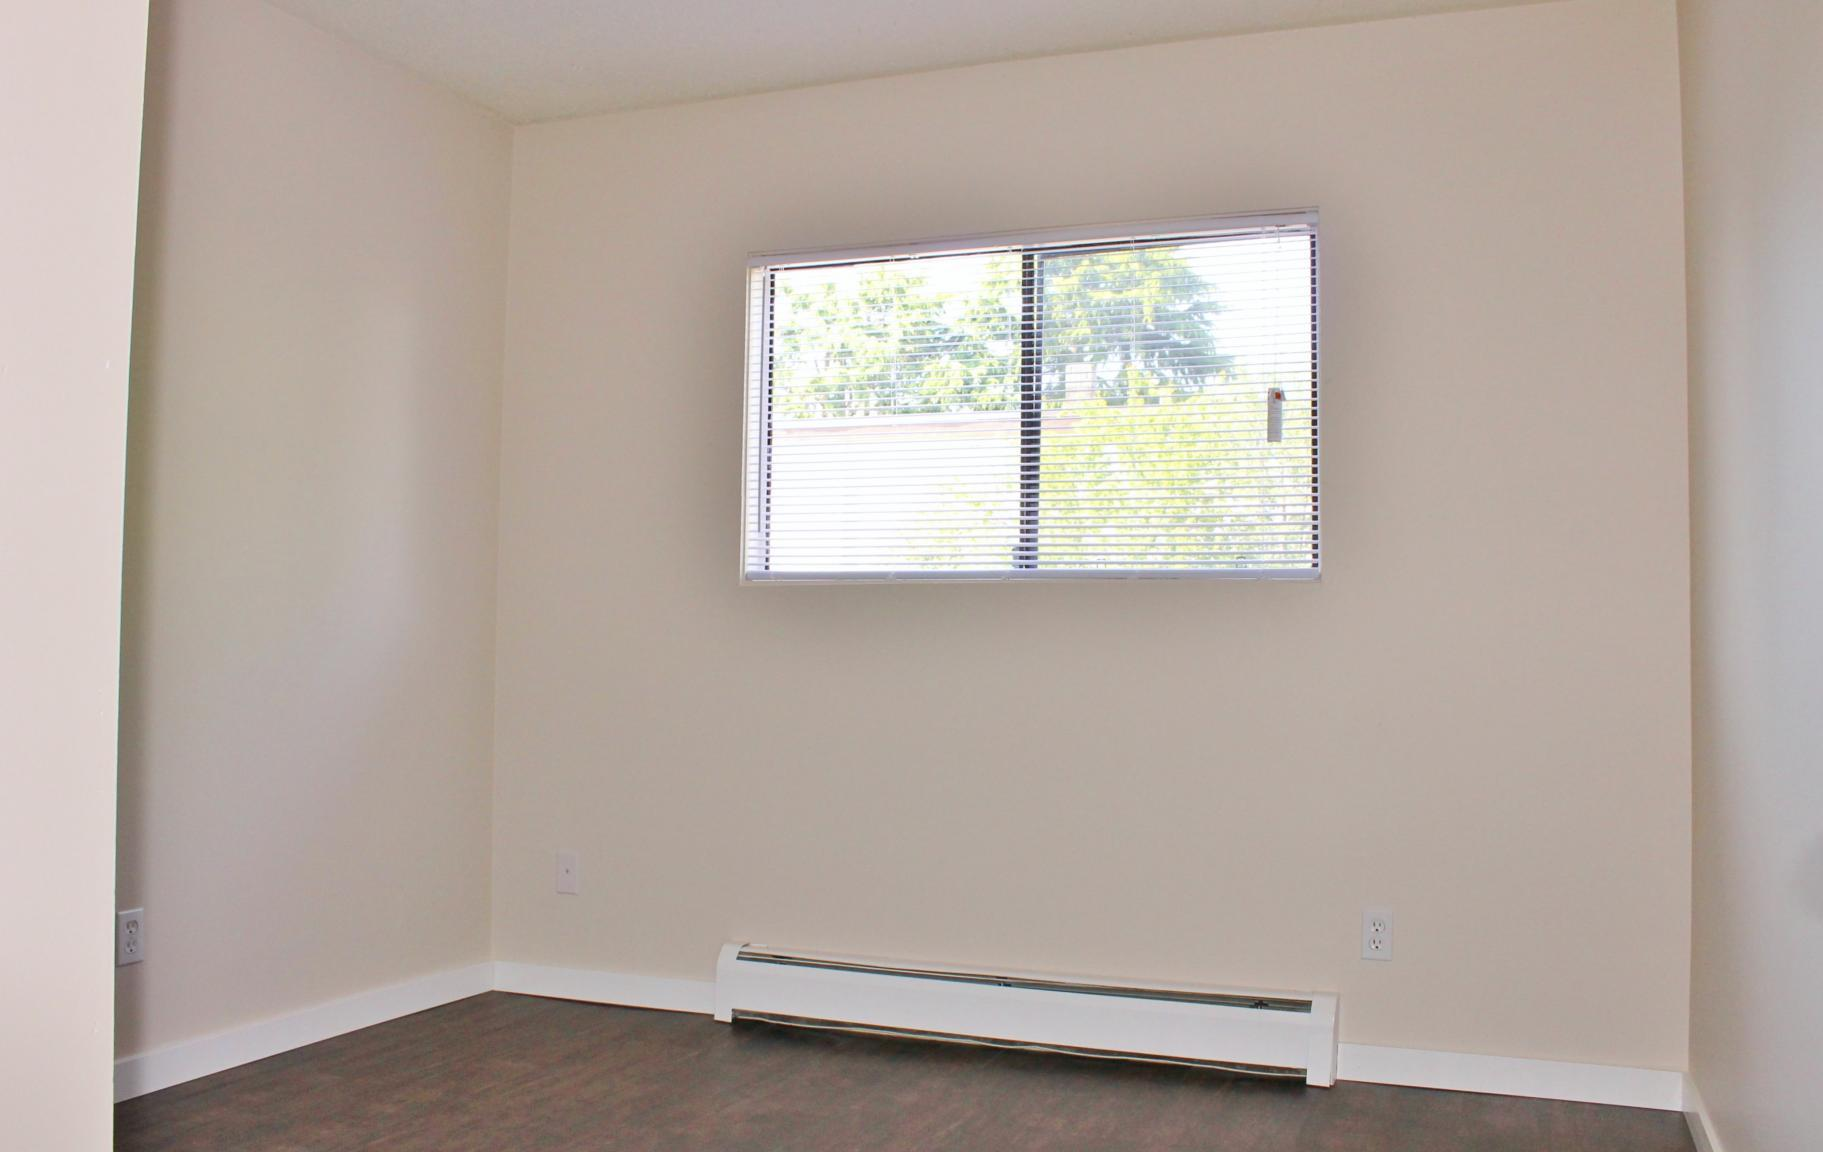 rent at 130 stewart ave apartments ranges from 775 for a one bedroom